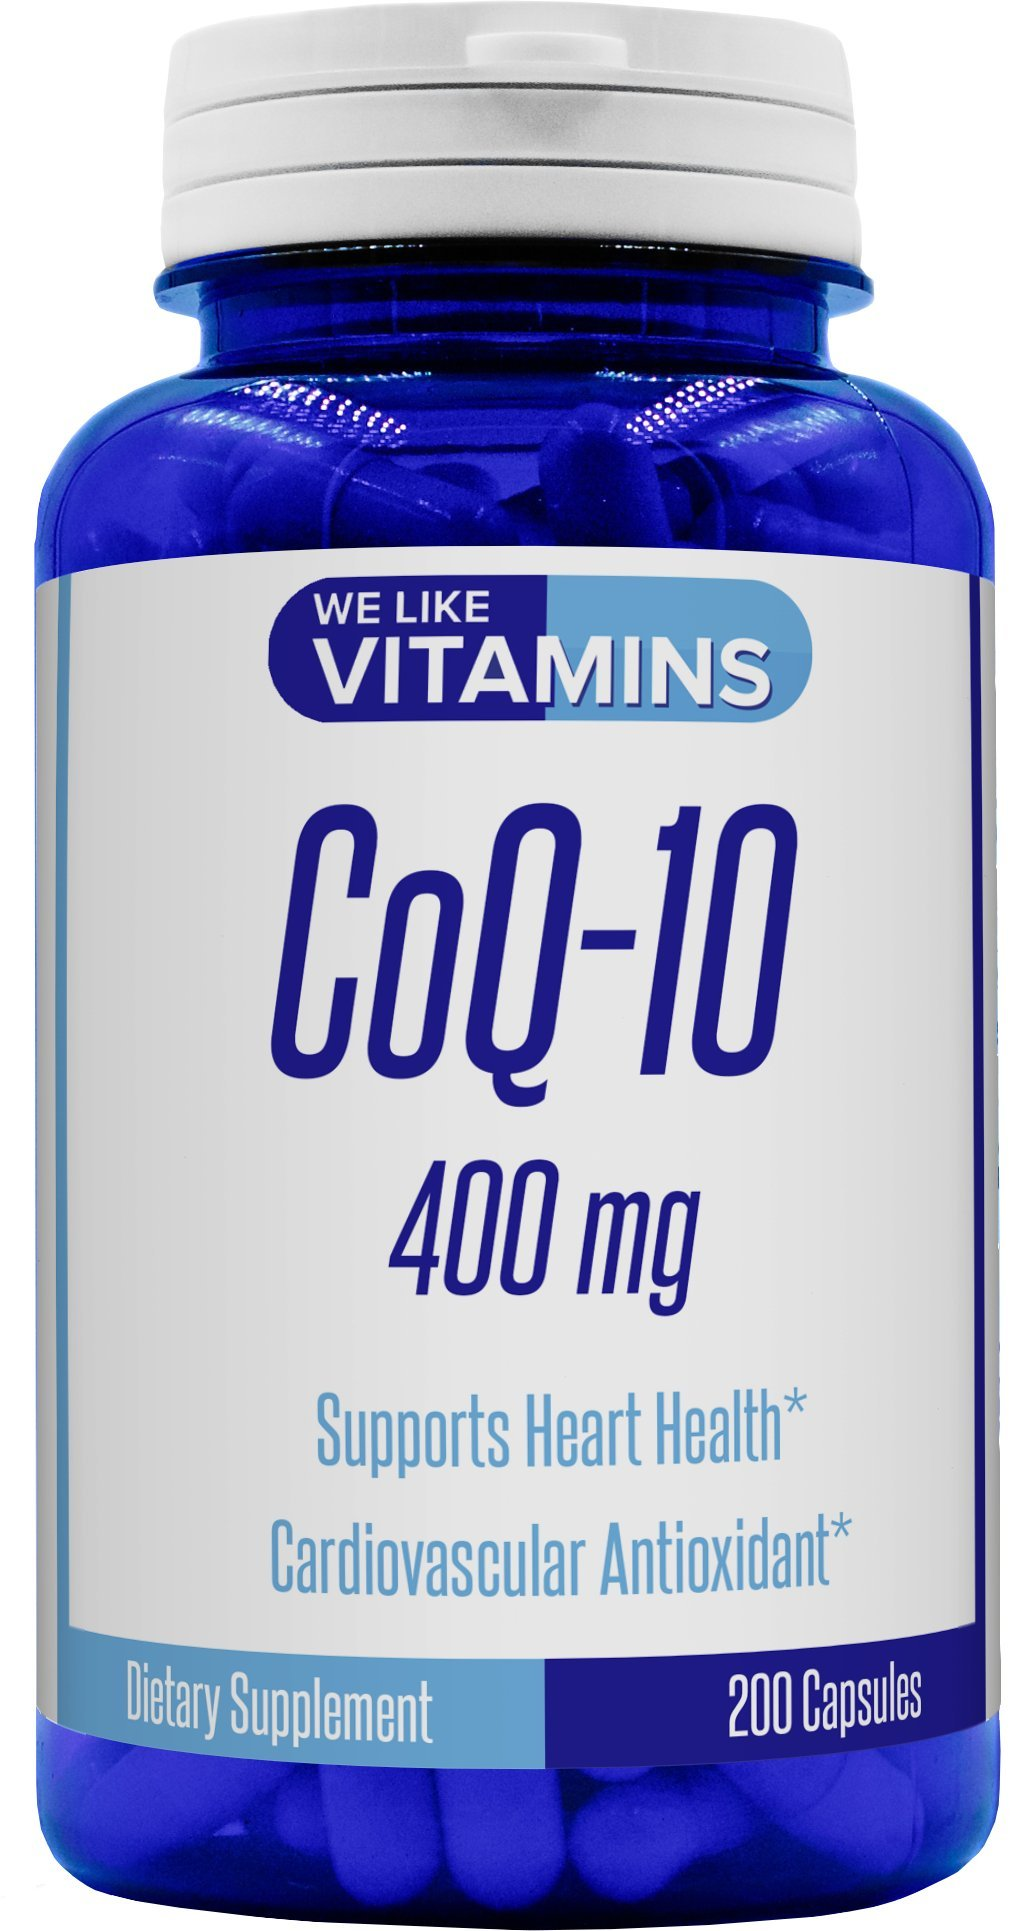 CoQ10 400mg Per Serving - 200 Capsules (Non GMO & Gluten Free) CoQ-10 - Antioxidant Co Q-10 Coenzyme Supports a Healthy Heart and Energy Levels by We Like Vitamins